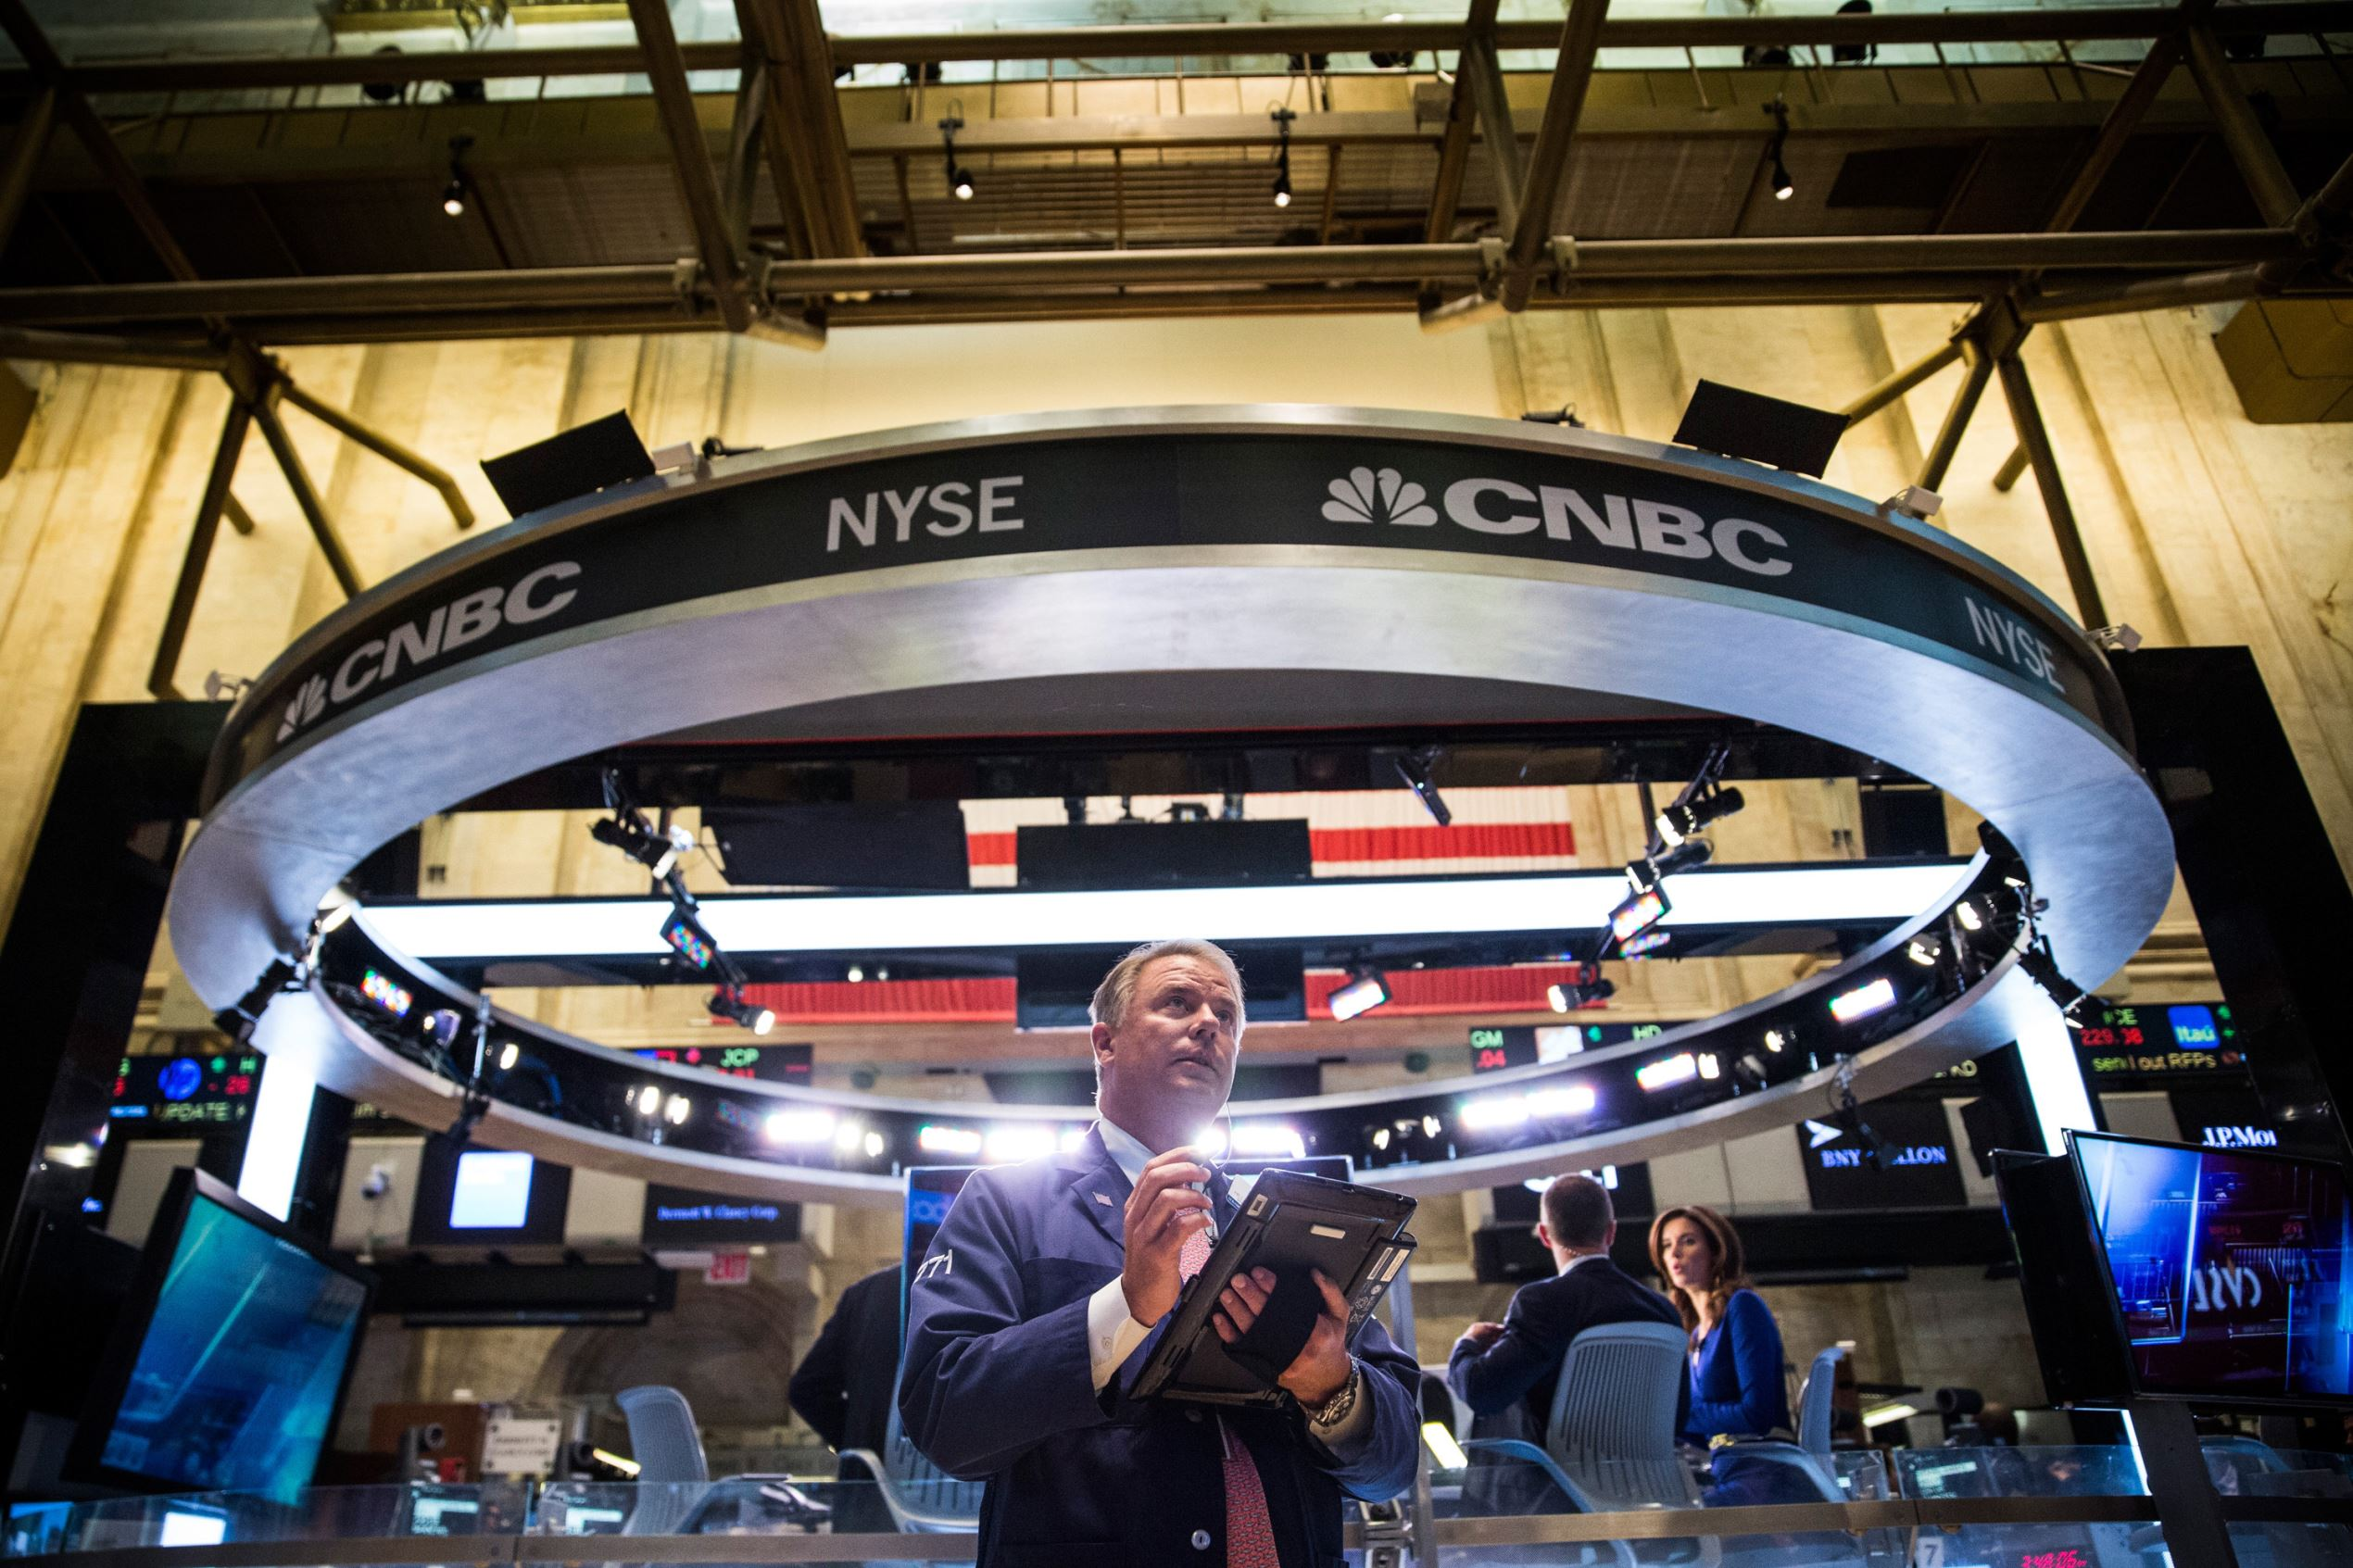 A trader works on the floor of the New York Stock Exchange during the afternoon of August 26, 2015 in New York City.